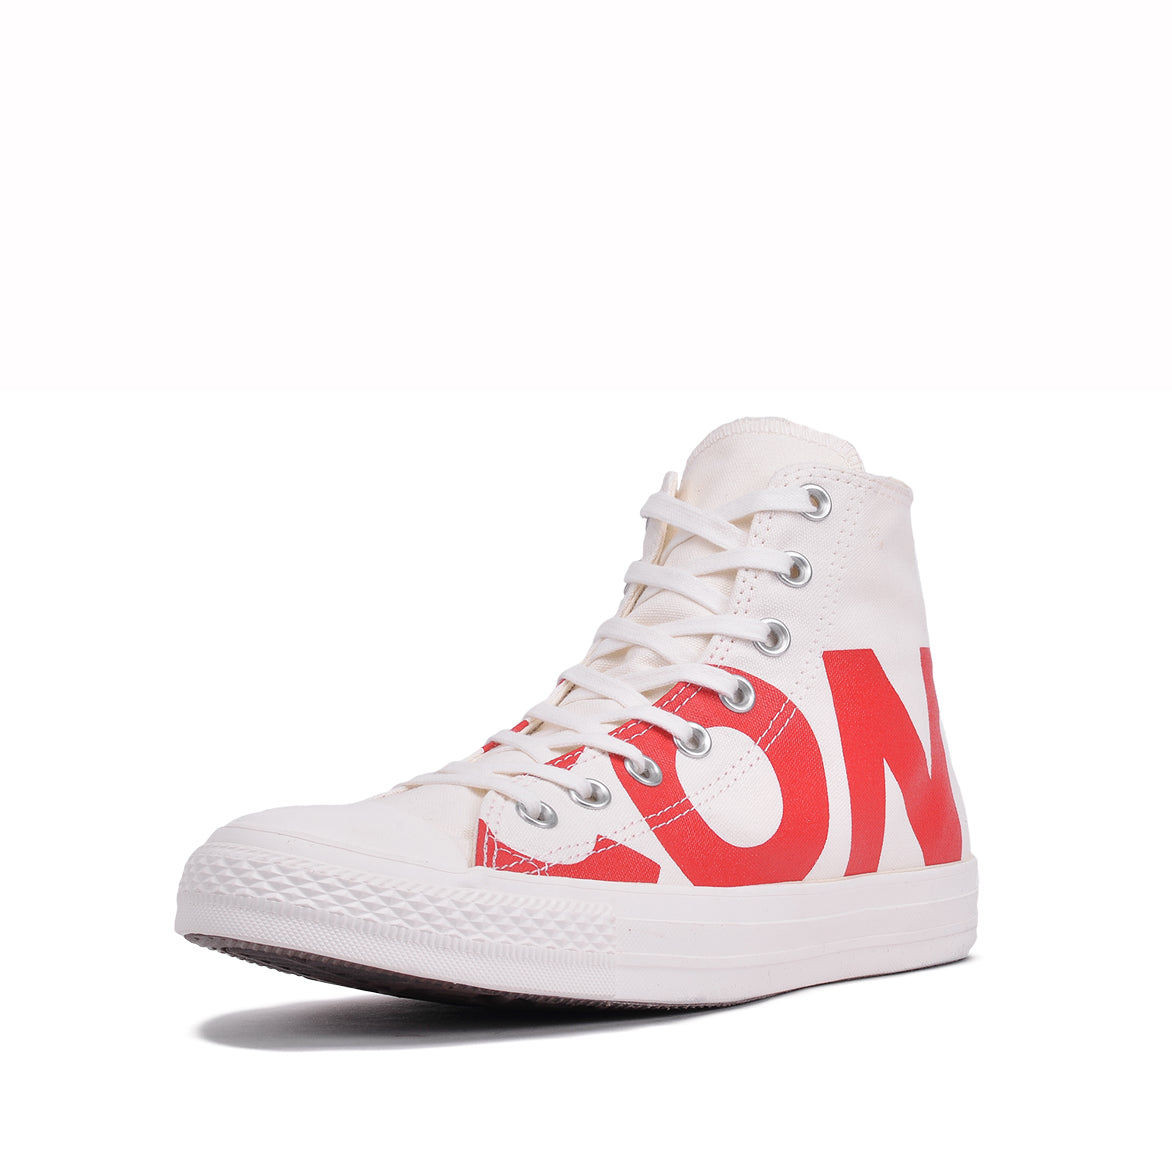 "CHUCK TAYLOR ALL STAR HI ""WORDMARK"" - NATURAL / RED"